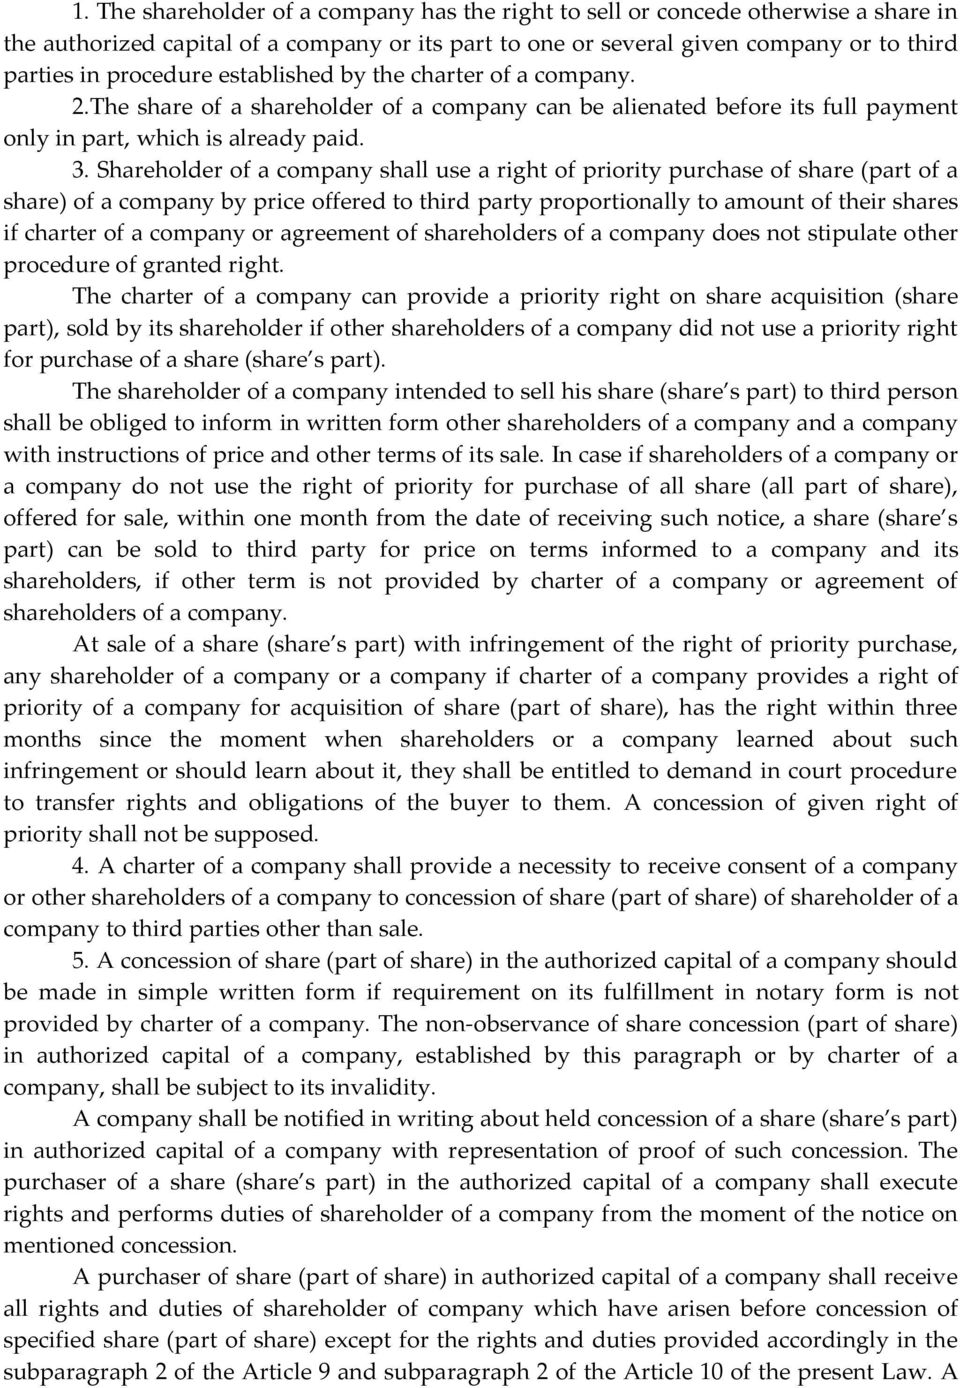 Shareholder of a company shall use a right of priority purchase of share (part of a share) of a company by price offered to third party proportionally to amount of their shares if charter of a